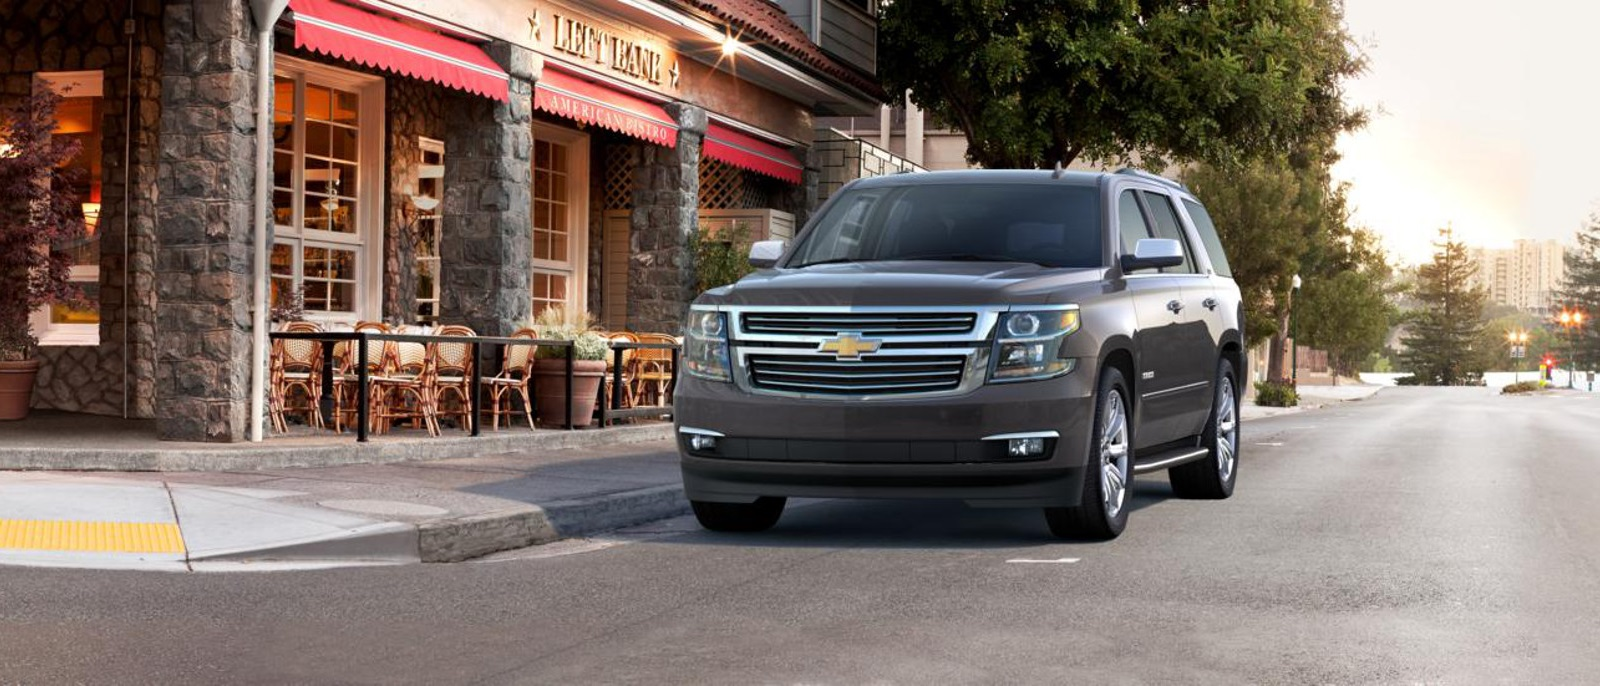 All Chevy big chevy suv : 2017 Chevrolet Tahoe SUV at Tom Gill Chevy